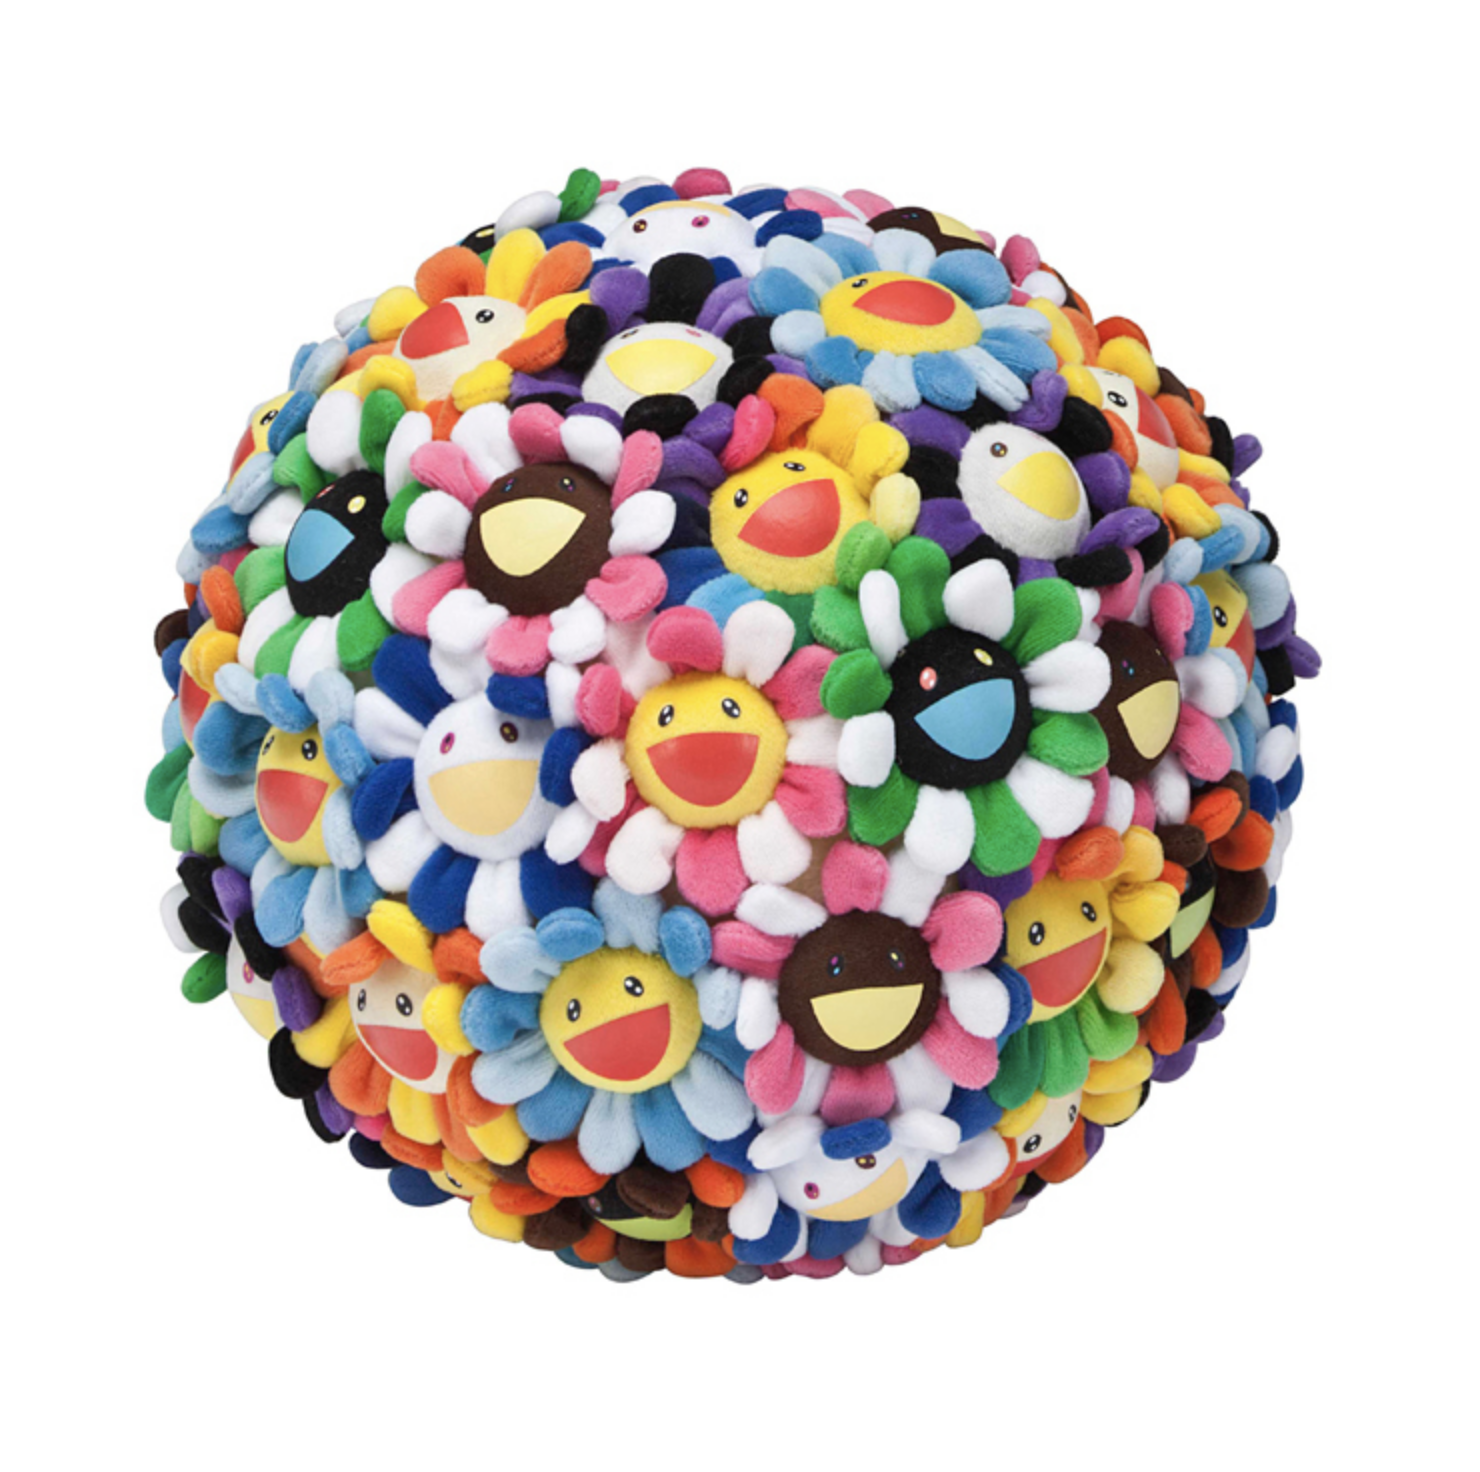 Takashi Murakami Plush Flower Ball Large 60cm Plush